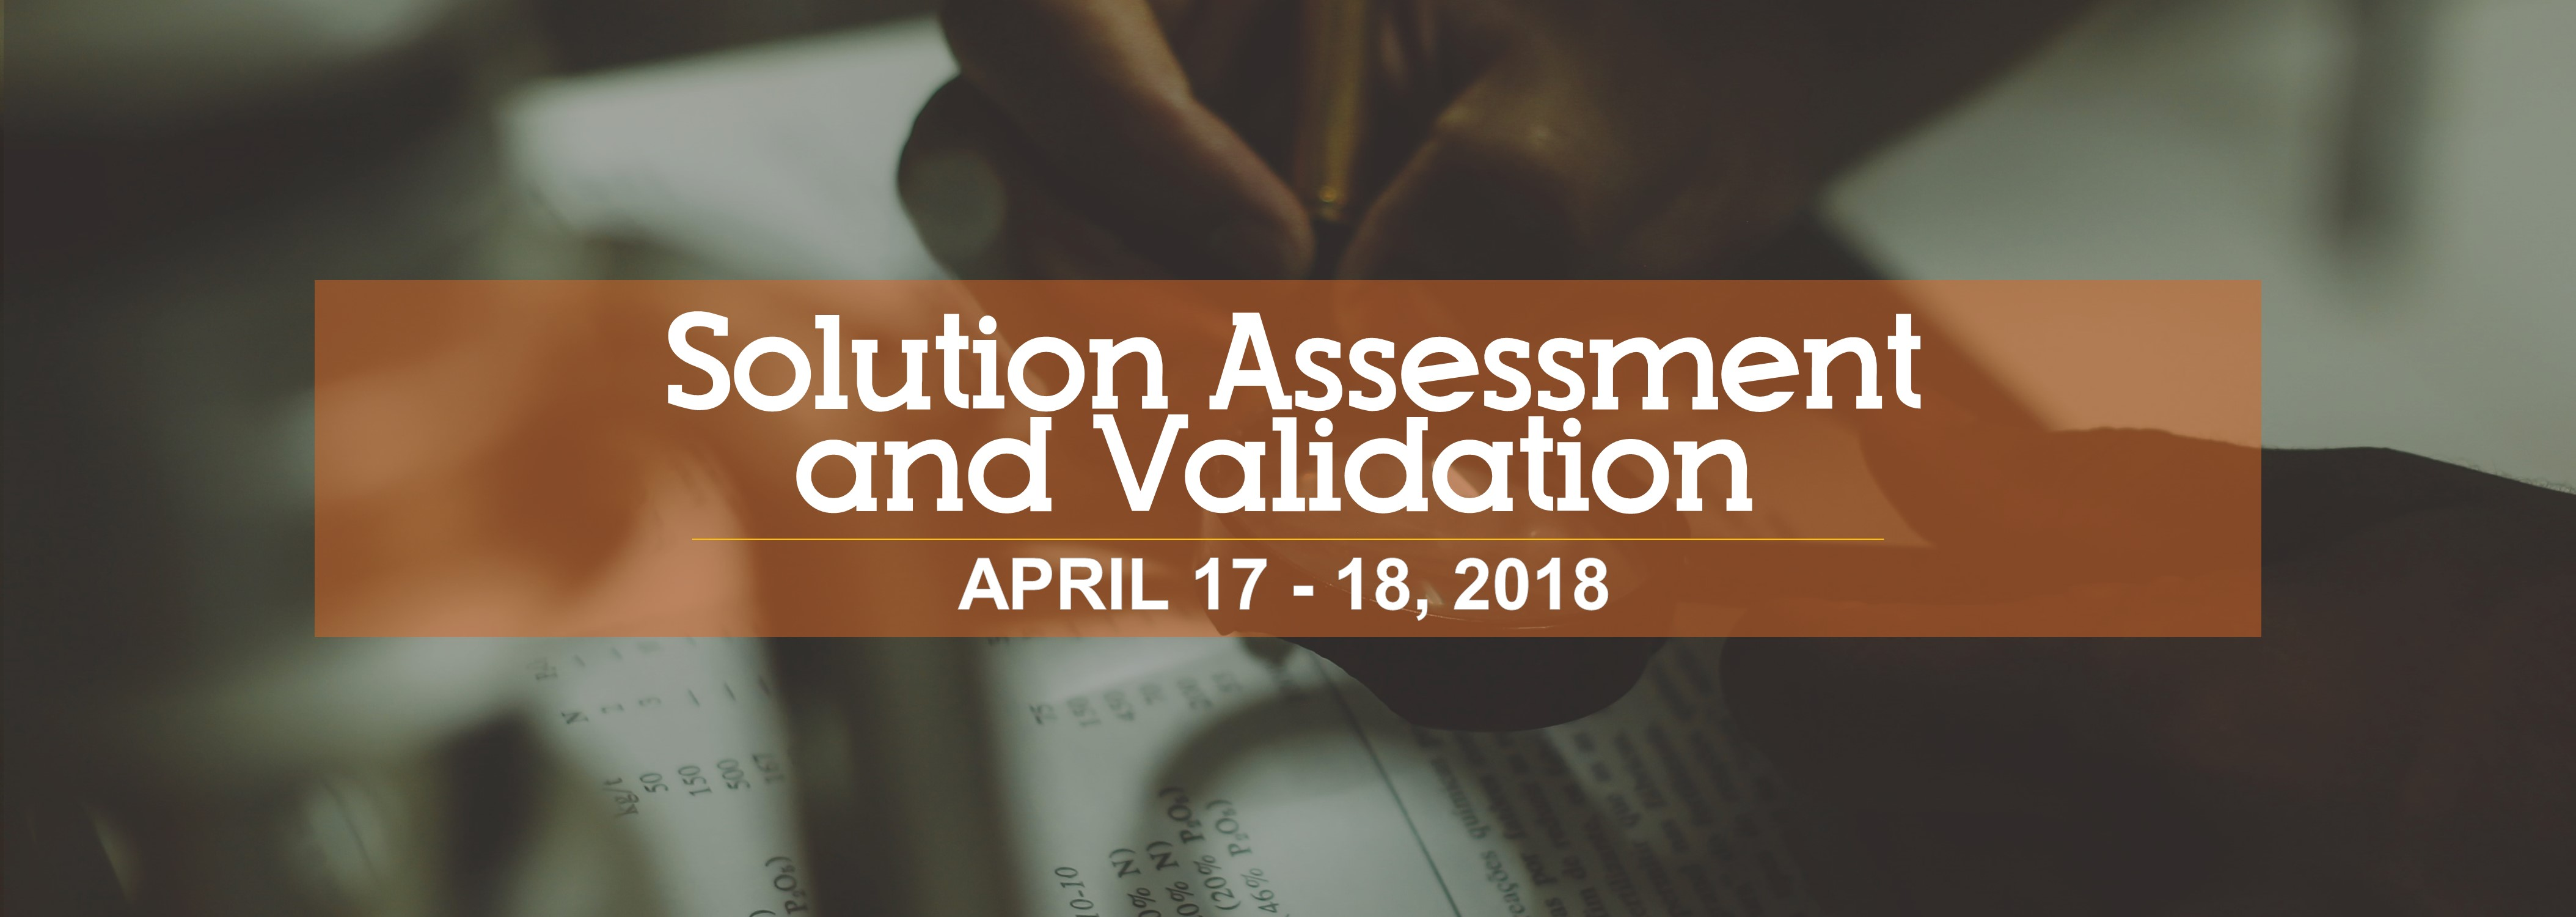 Solution Assessment and Validation on April 17 - 18, 2018